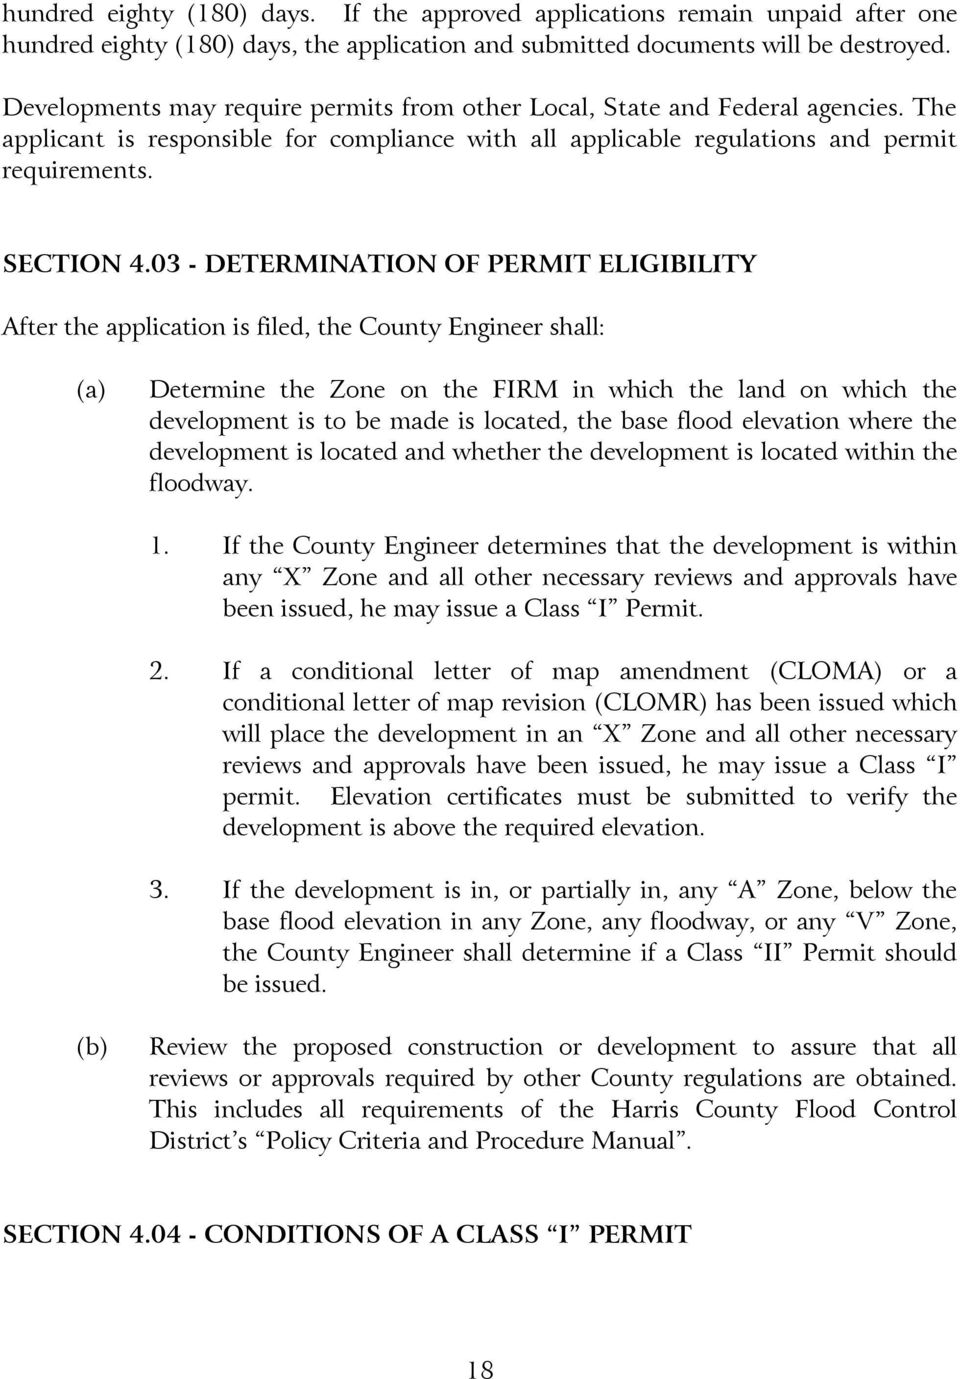 03 - DETERMINATION OF PERMIT ELIGIBILITY After the application is filed, the County Engineer shall: (a) Determine the Zone on the FIRM in which the land on which the development is to be made is